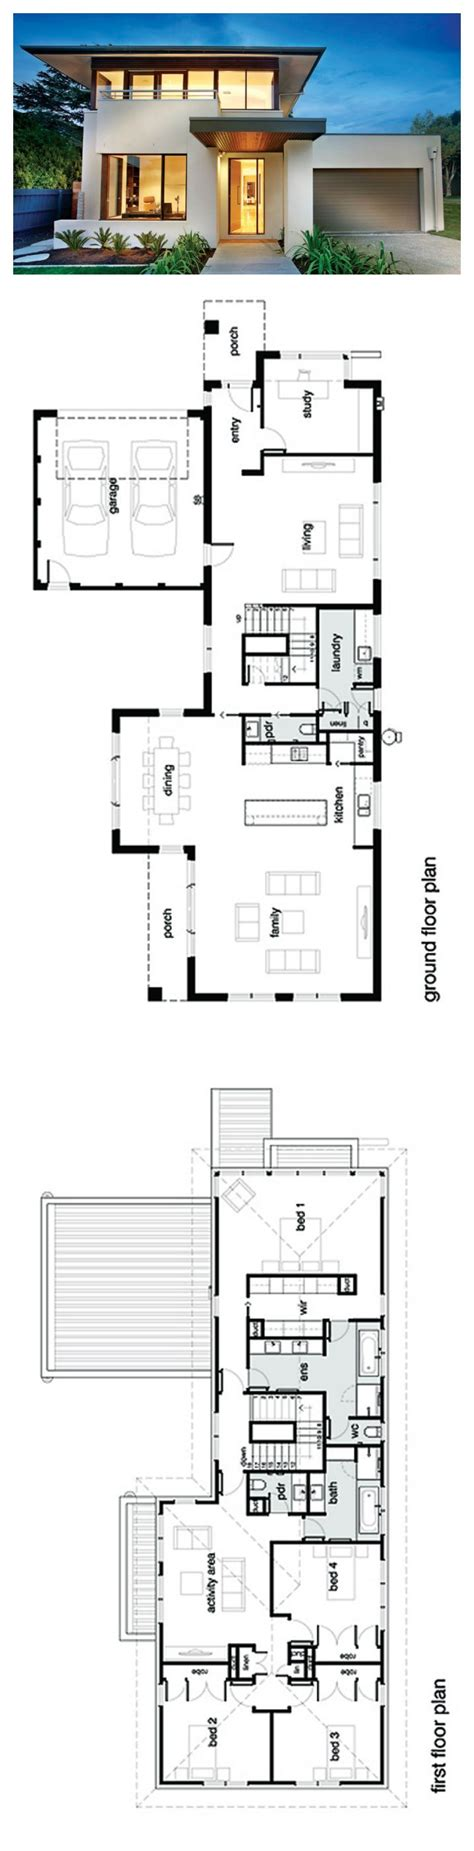 modern house floor plan pdf house modern 18 house layout plans free ideas at popular design a floor